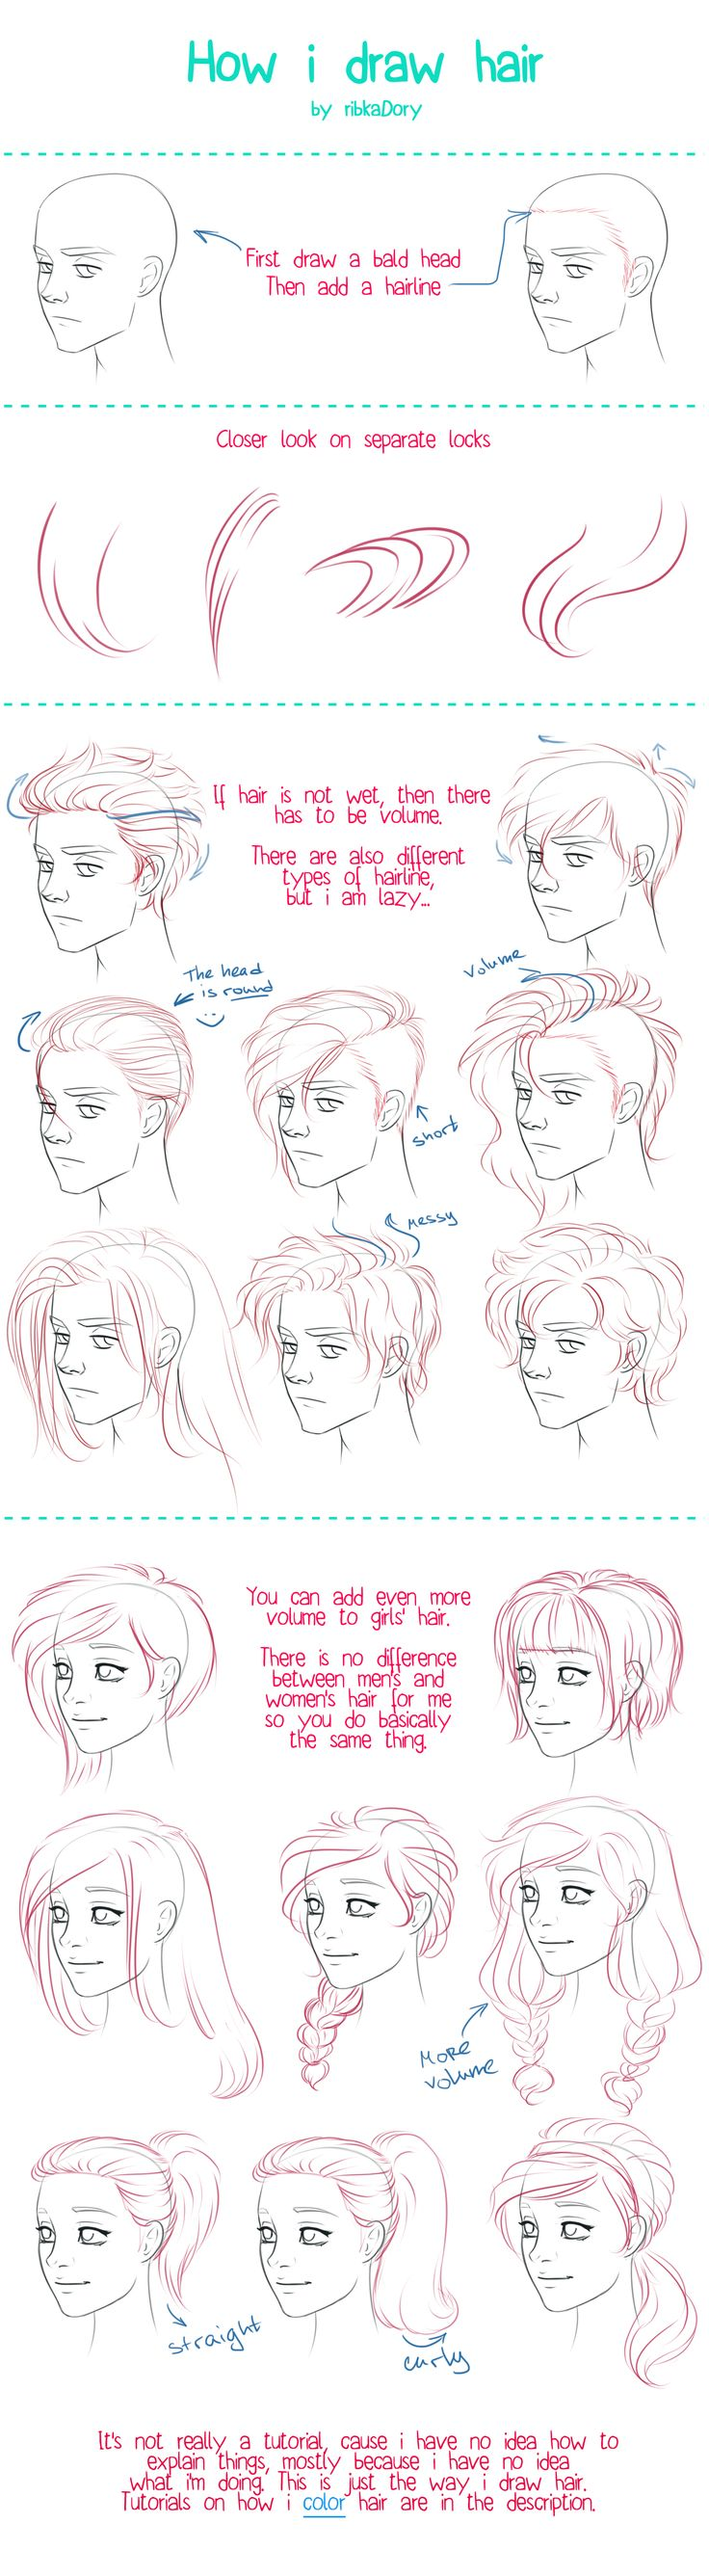 How to Draw Hair tutorial by =ribkaDory on deviantART: by drawing the ends and hairs at hairline close together you can create shading and a sense of form.